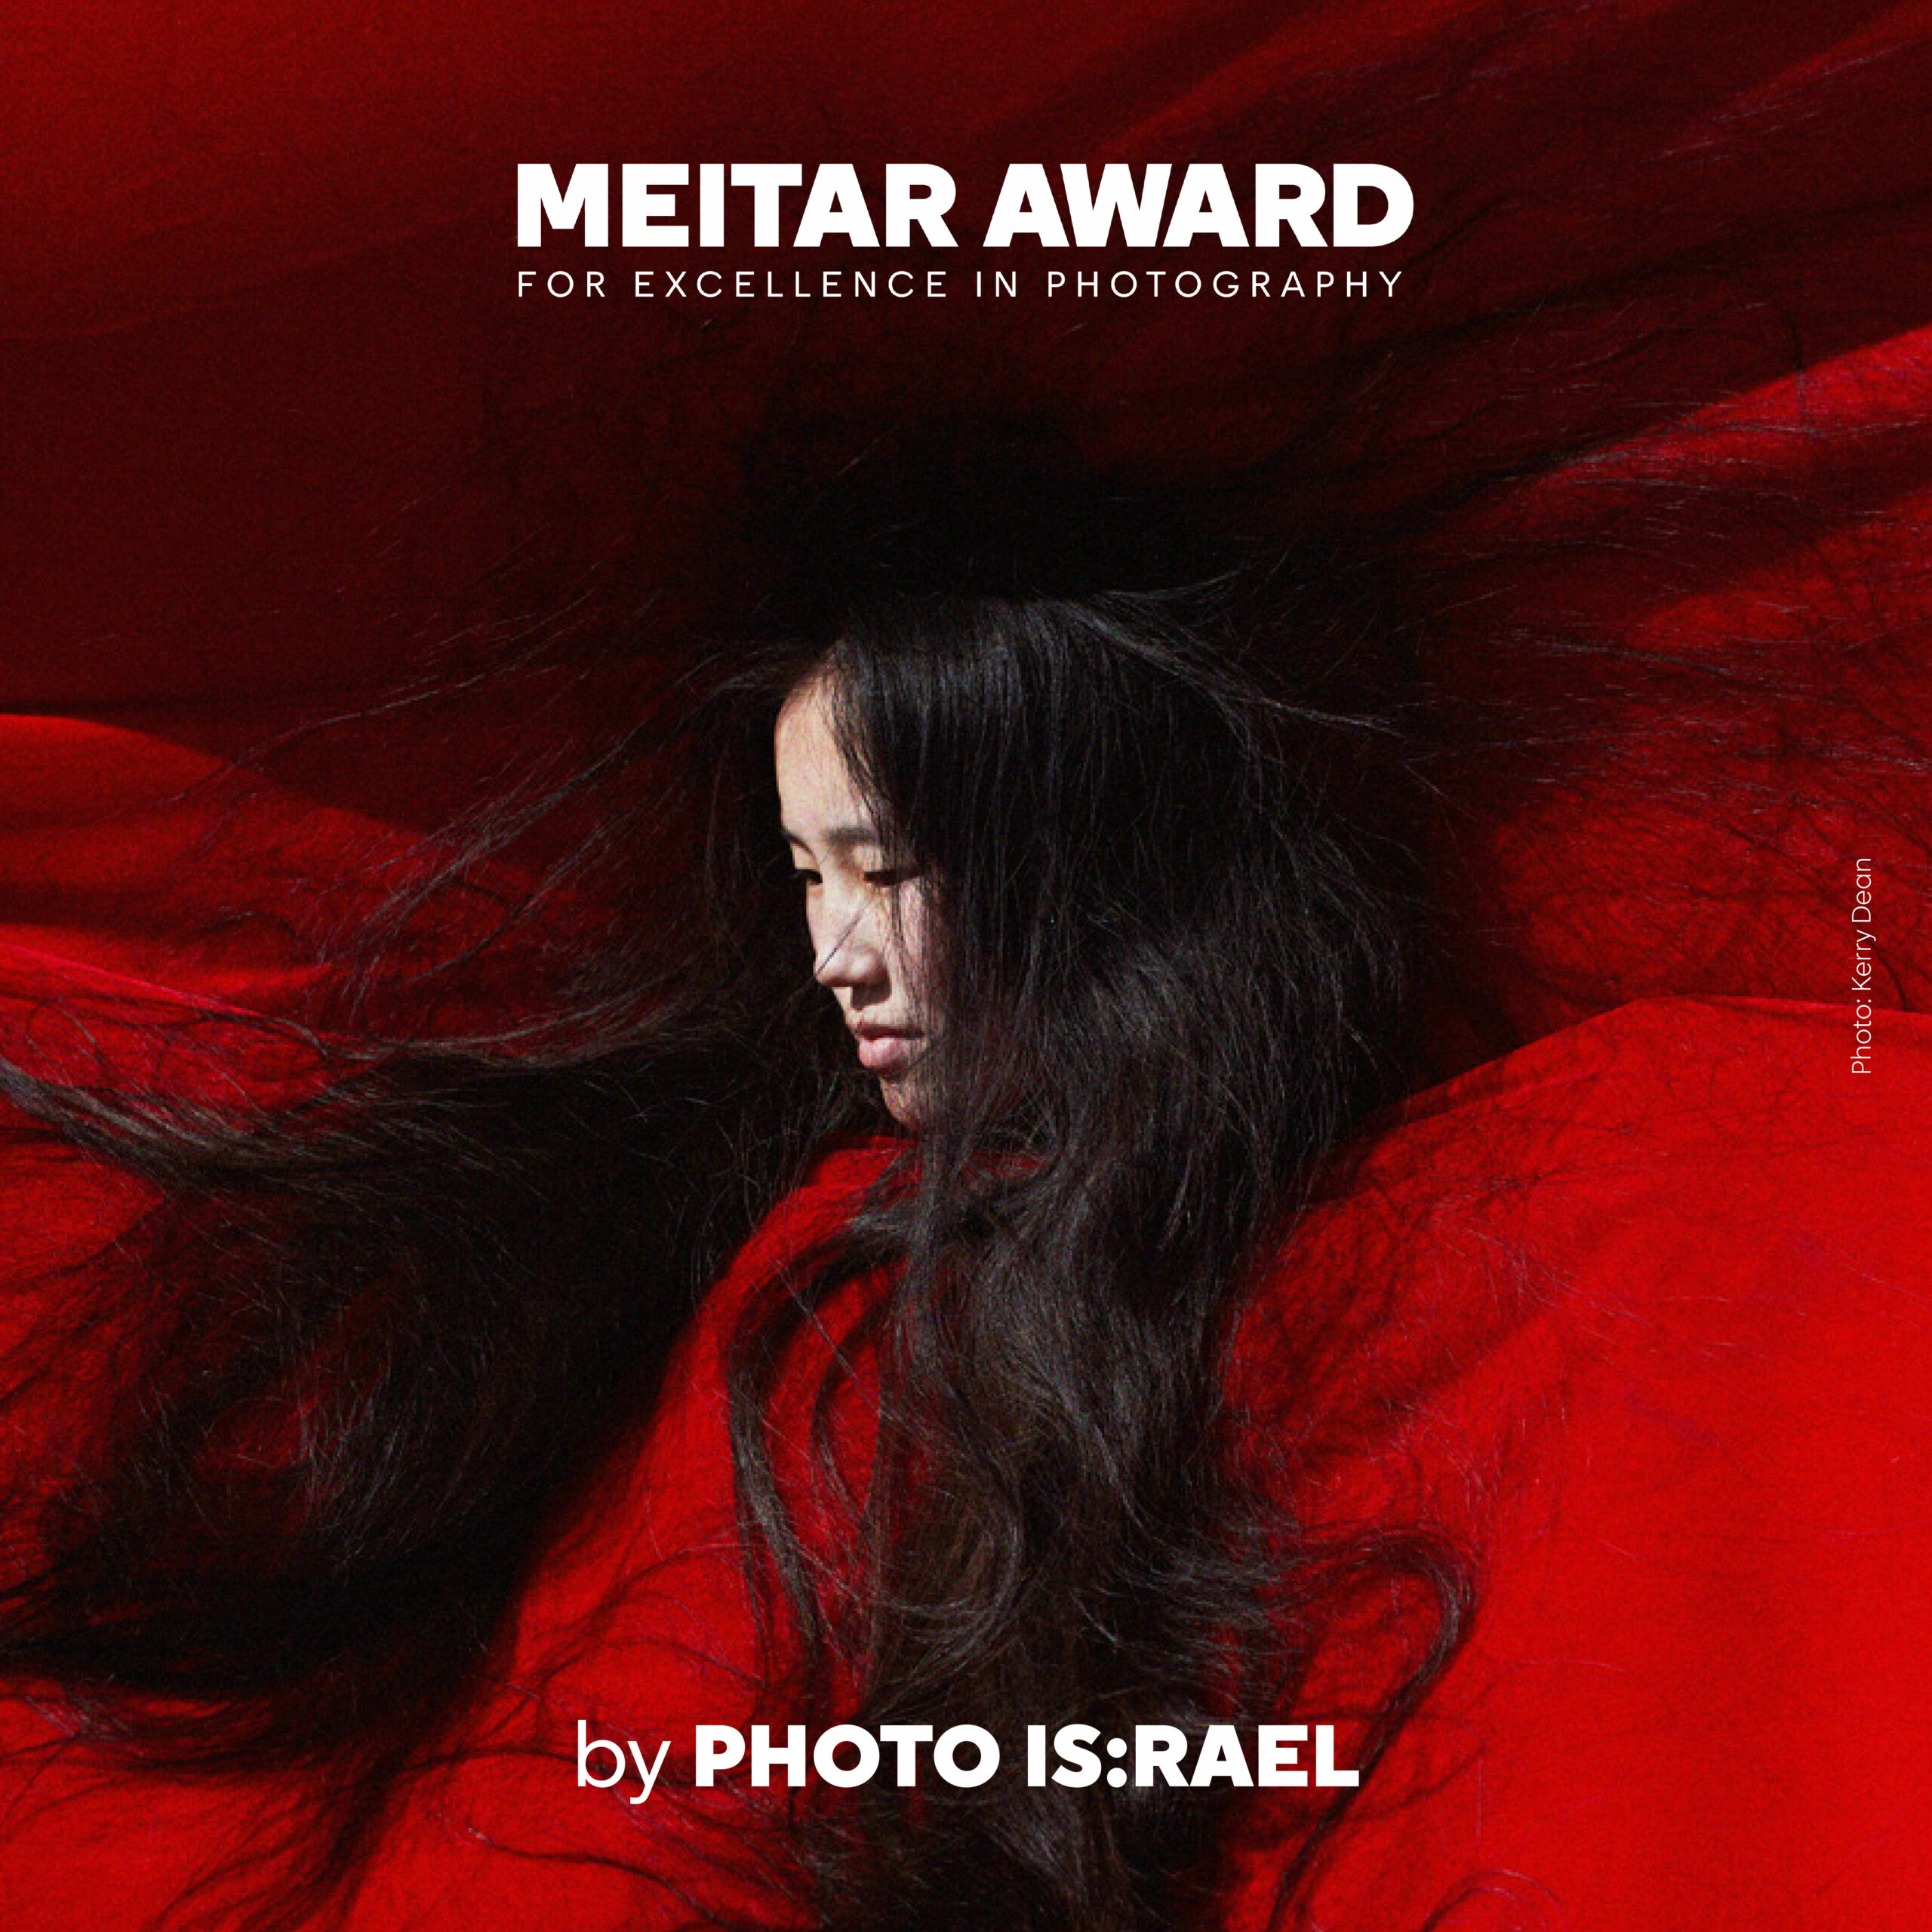 The 2021 Meitar Award for Excellence in Photography